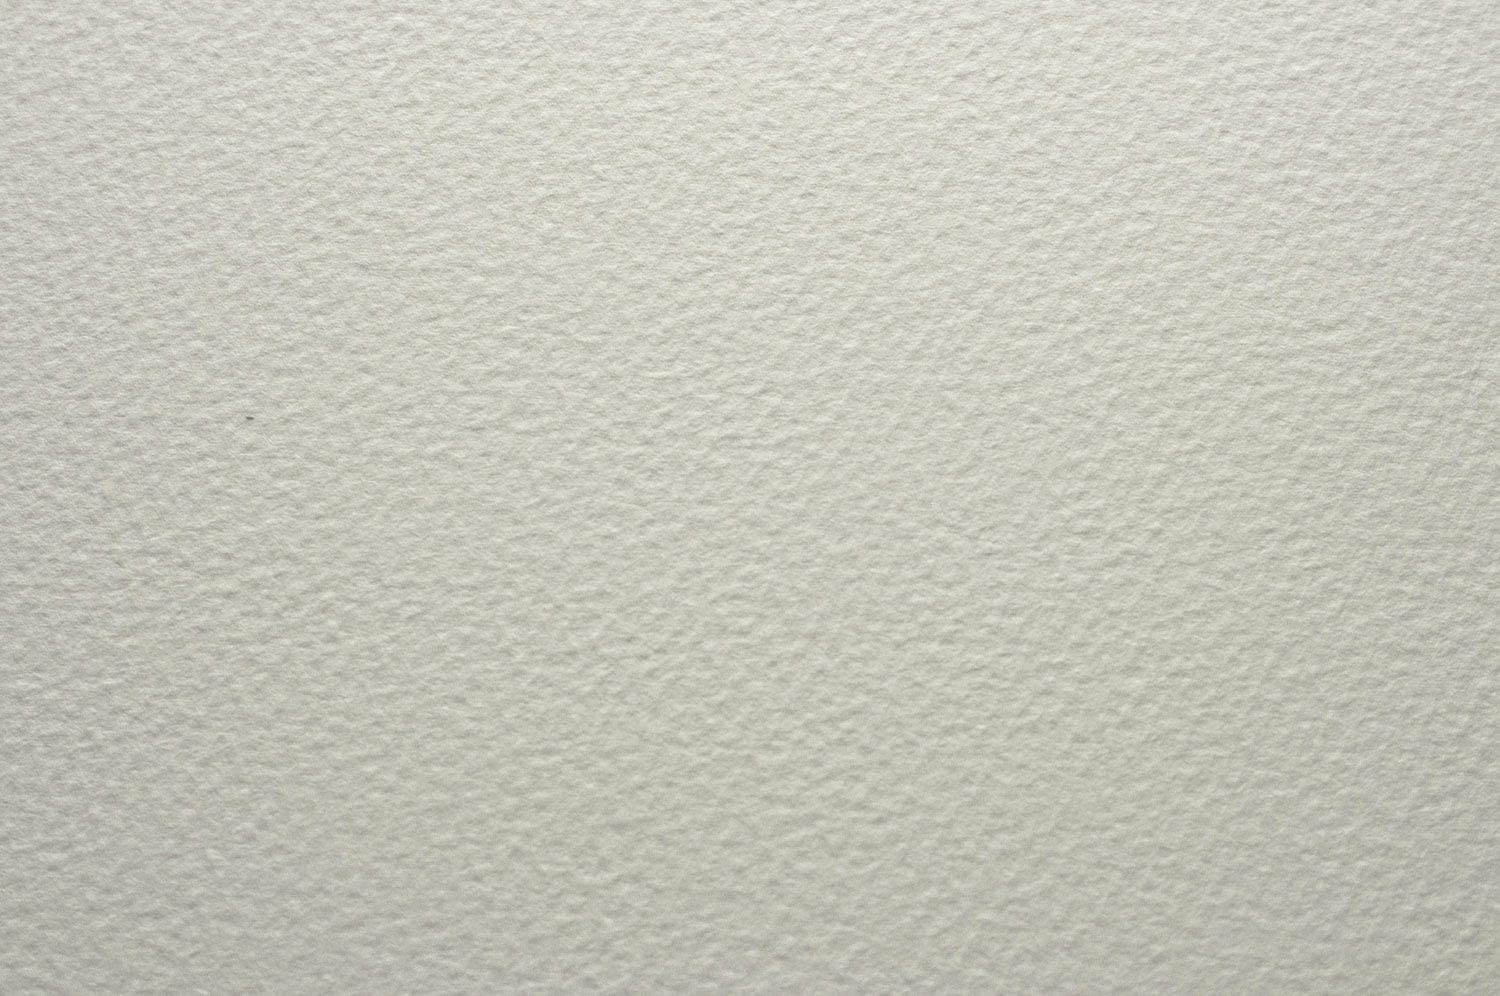 20 x Bockingford Watercolour Paper 425gsm 200lbs 28x38cm//11x15 - NOT 1//4 Imperial